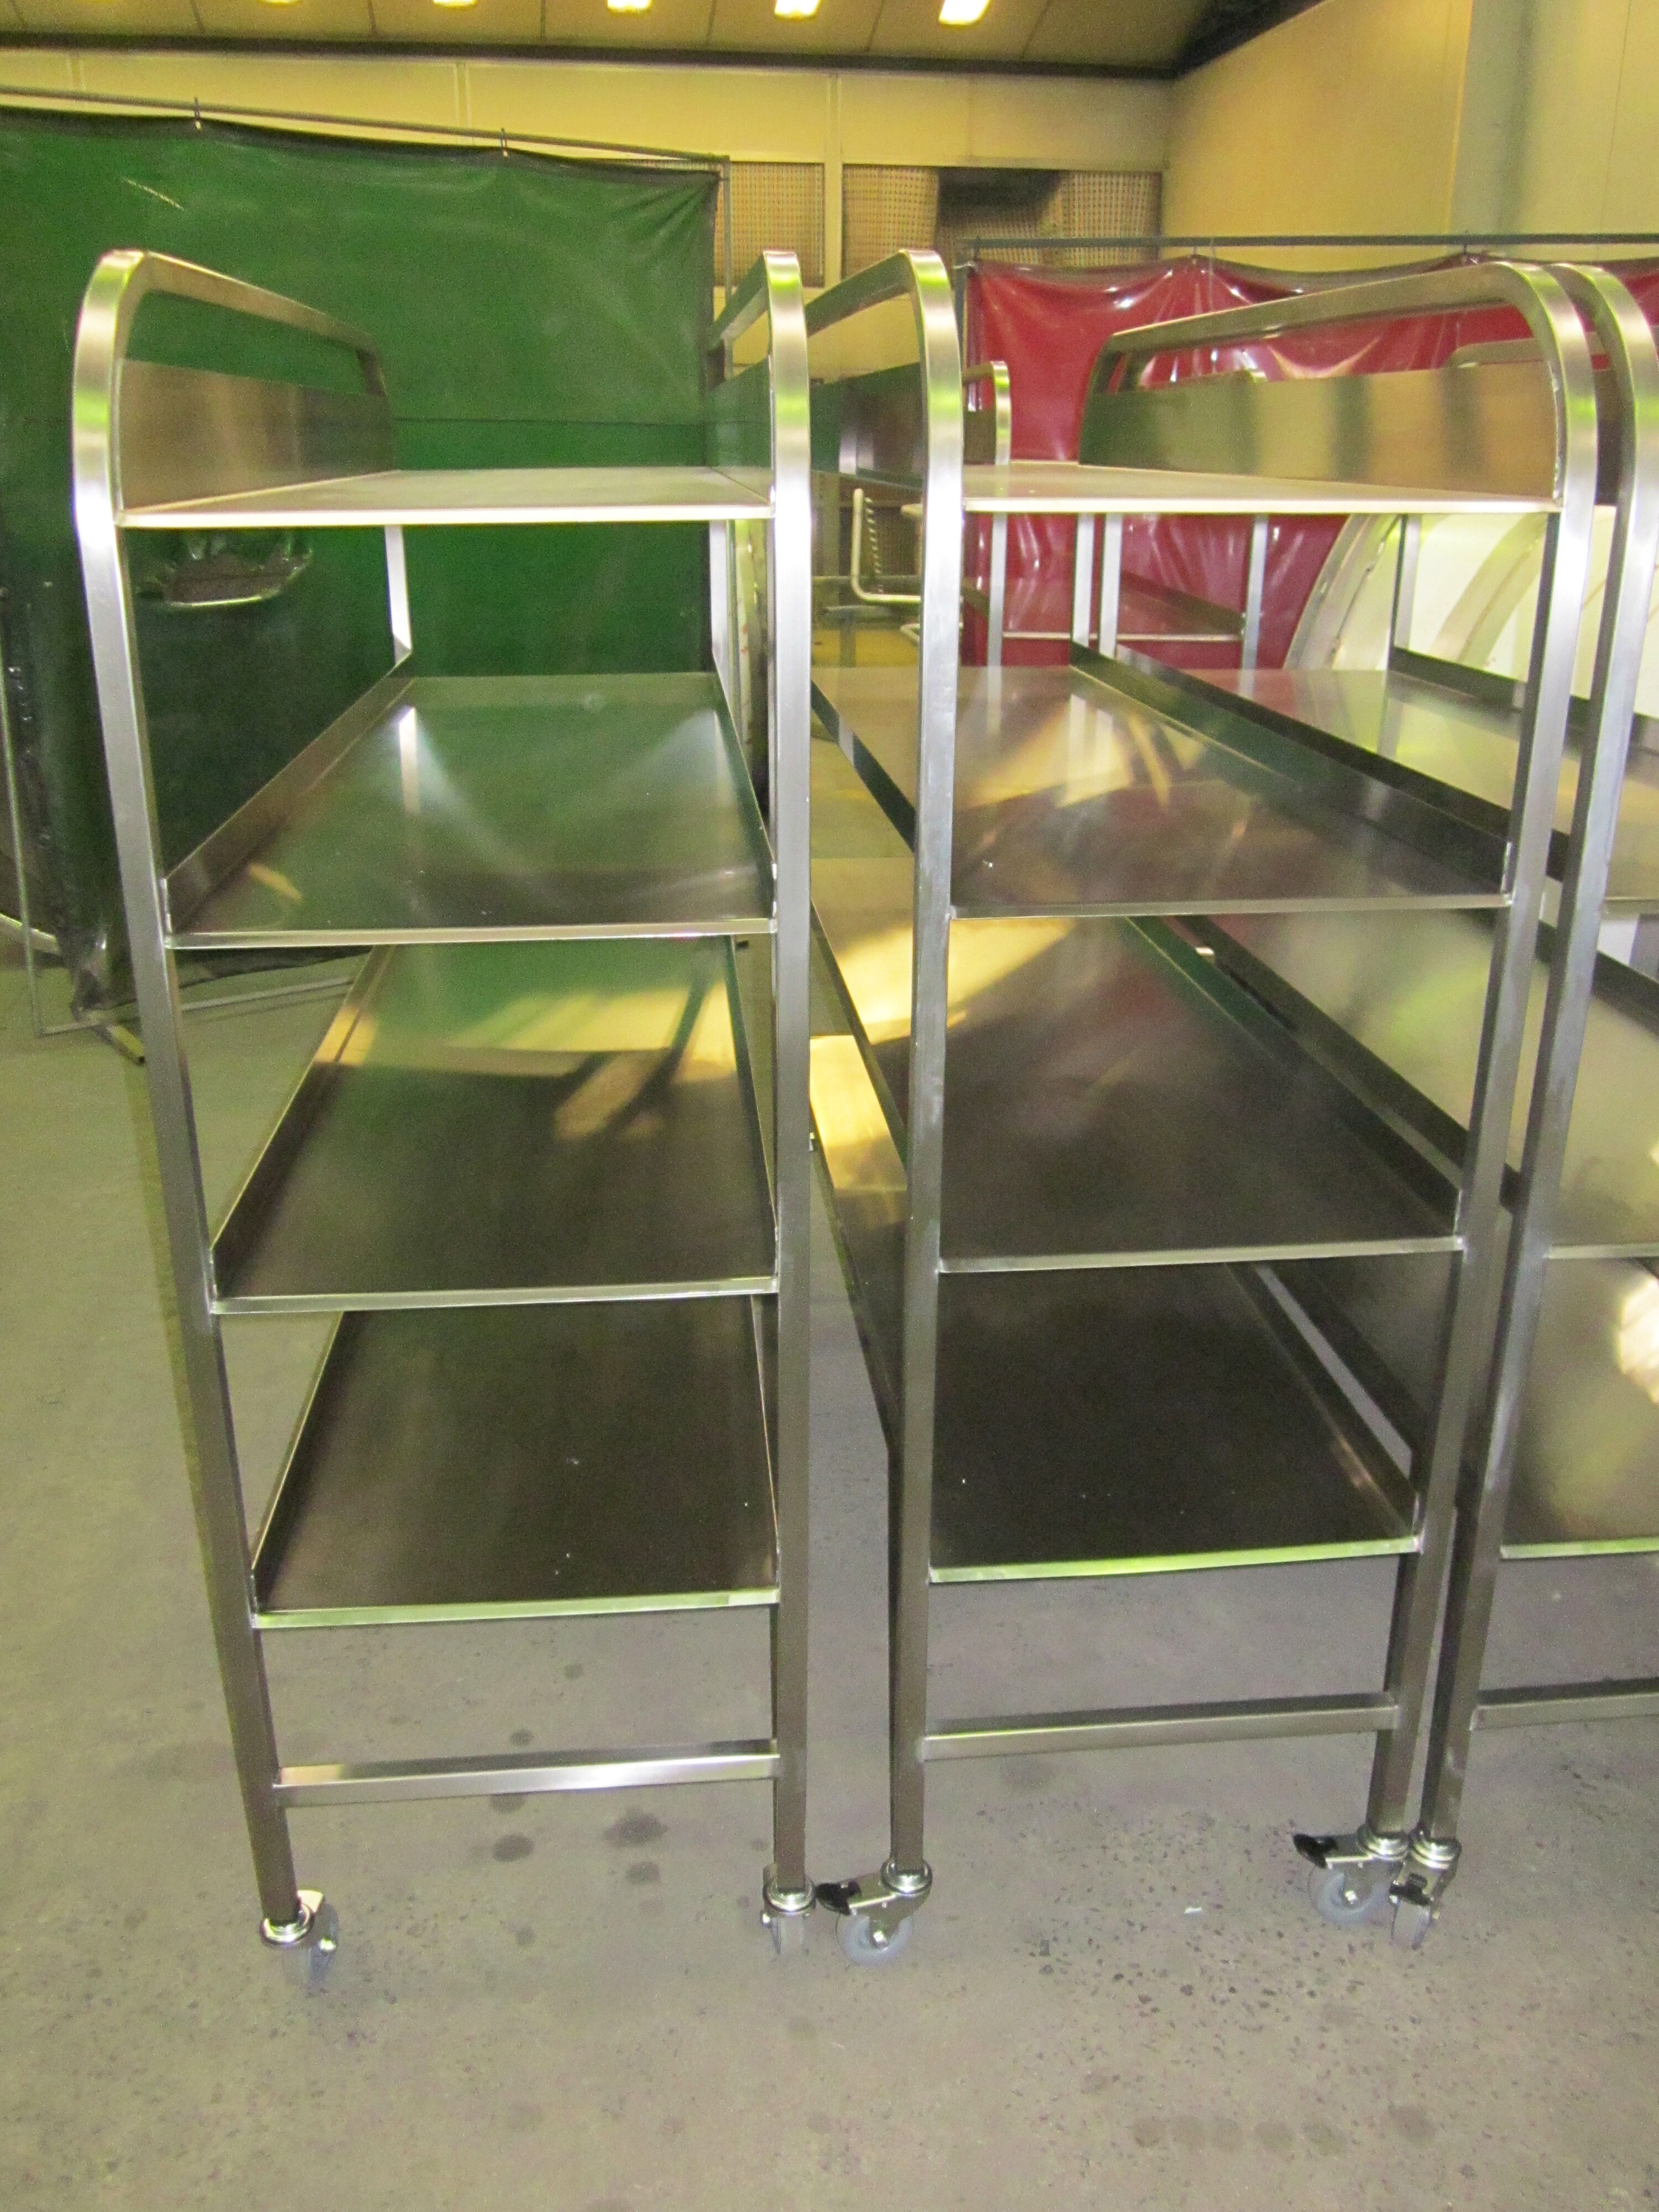 Food and Beverage stainless steel trolley